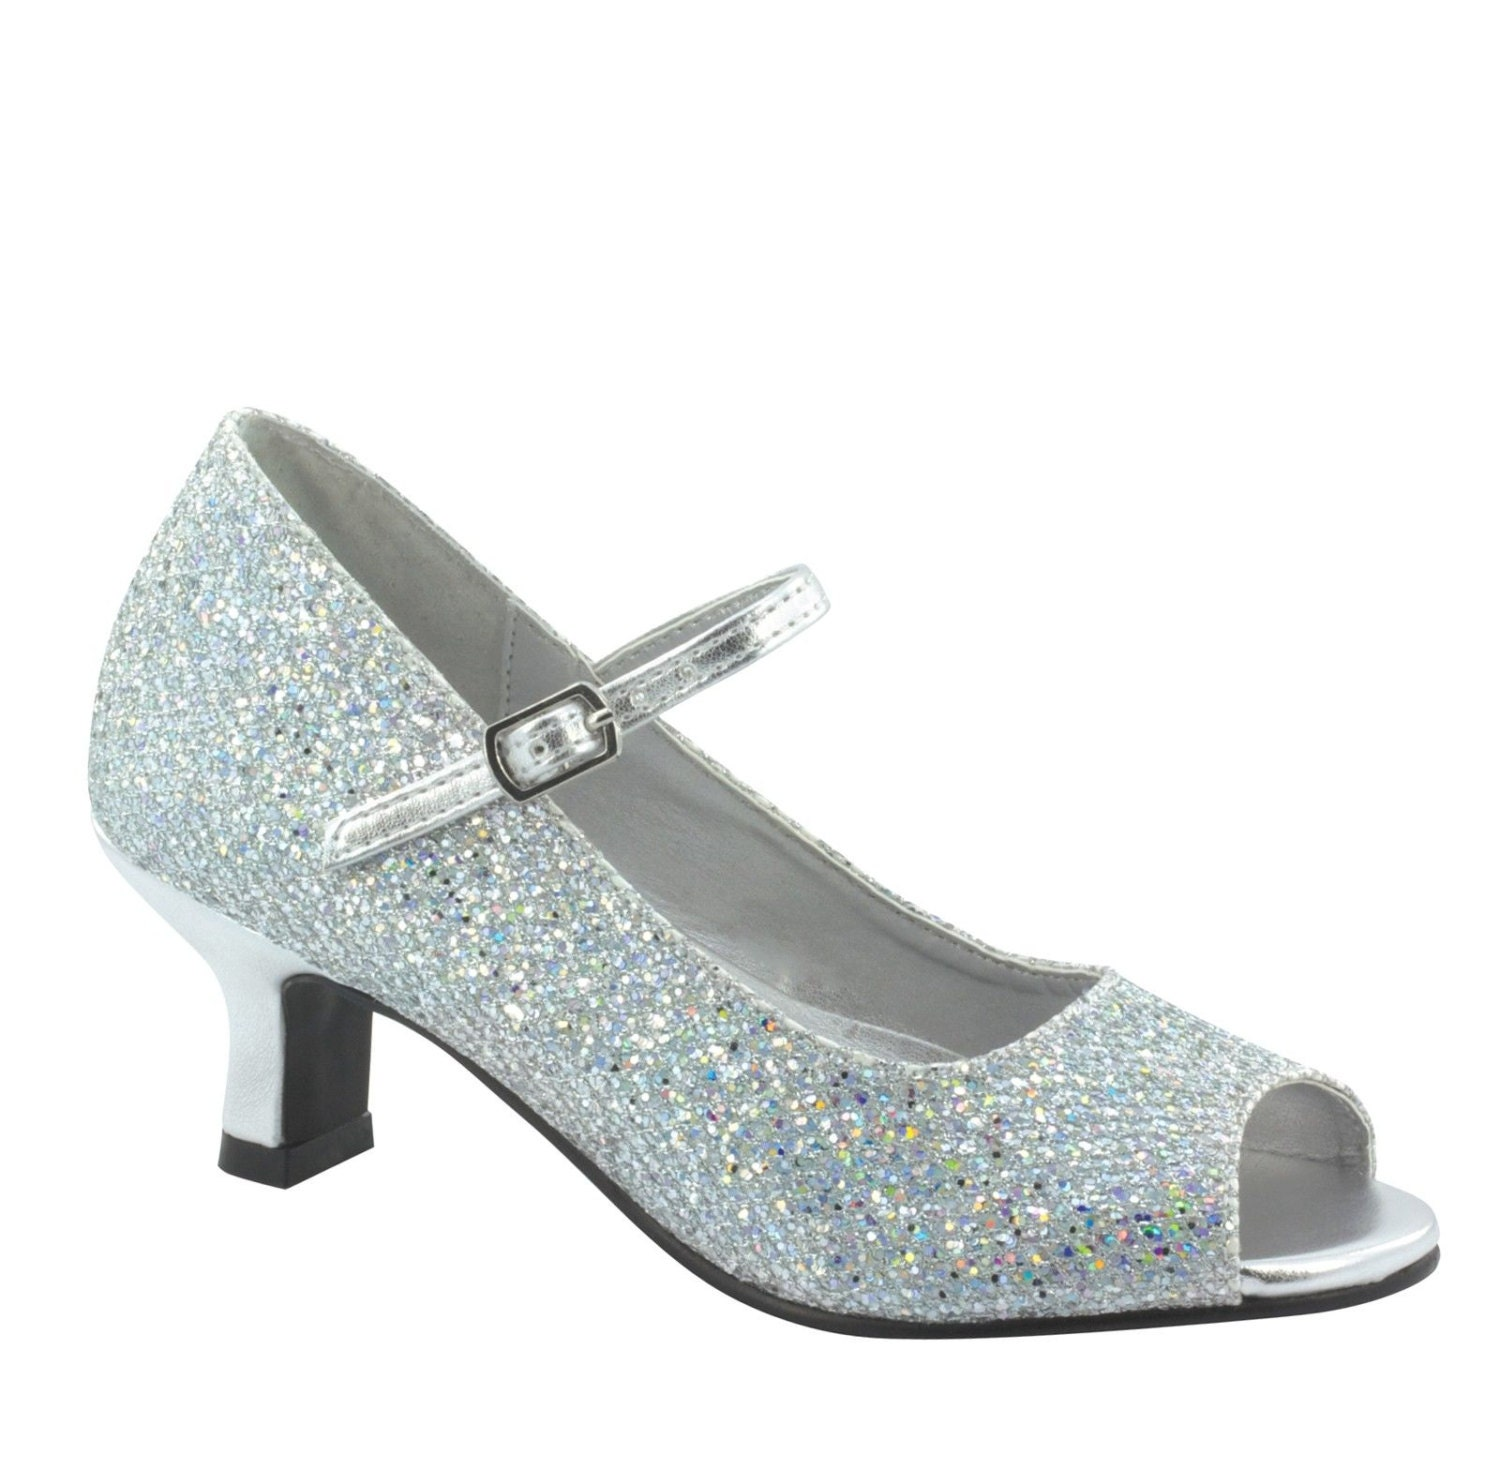 Silver Shoes 1 Inch Heel